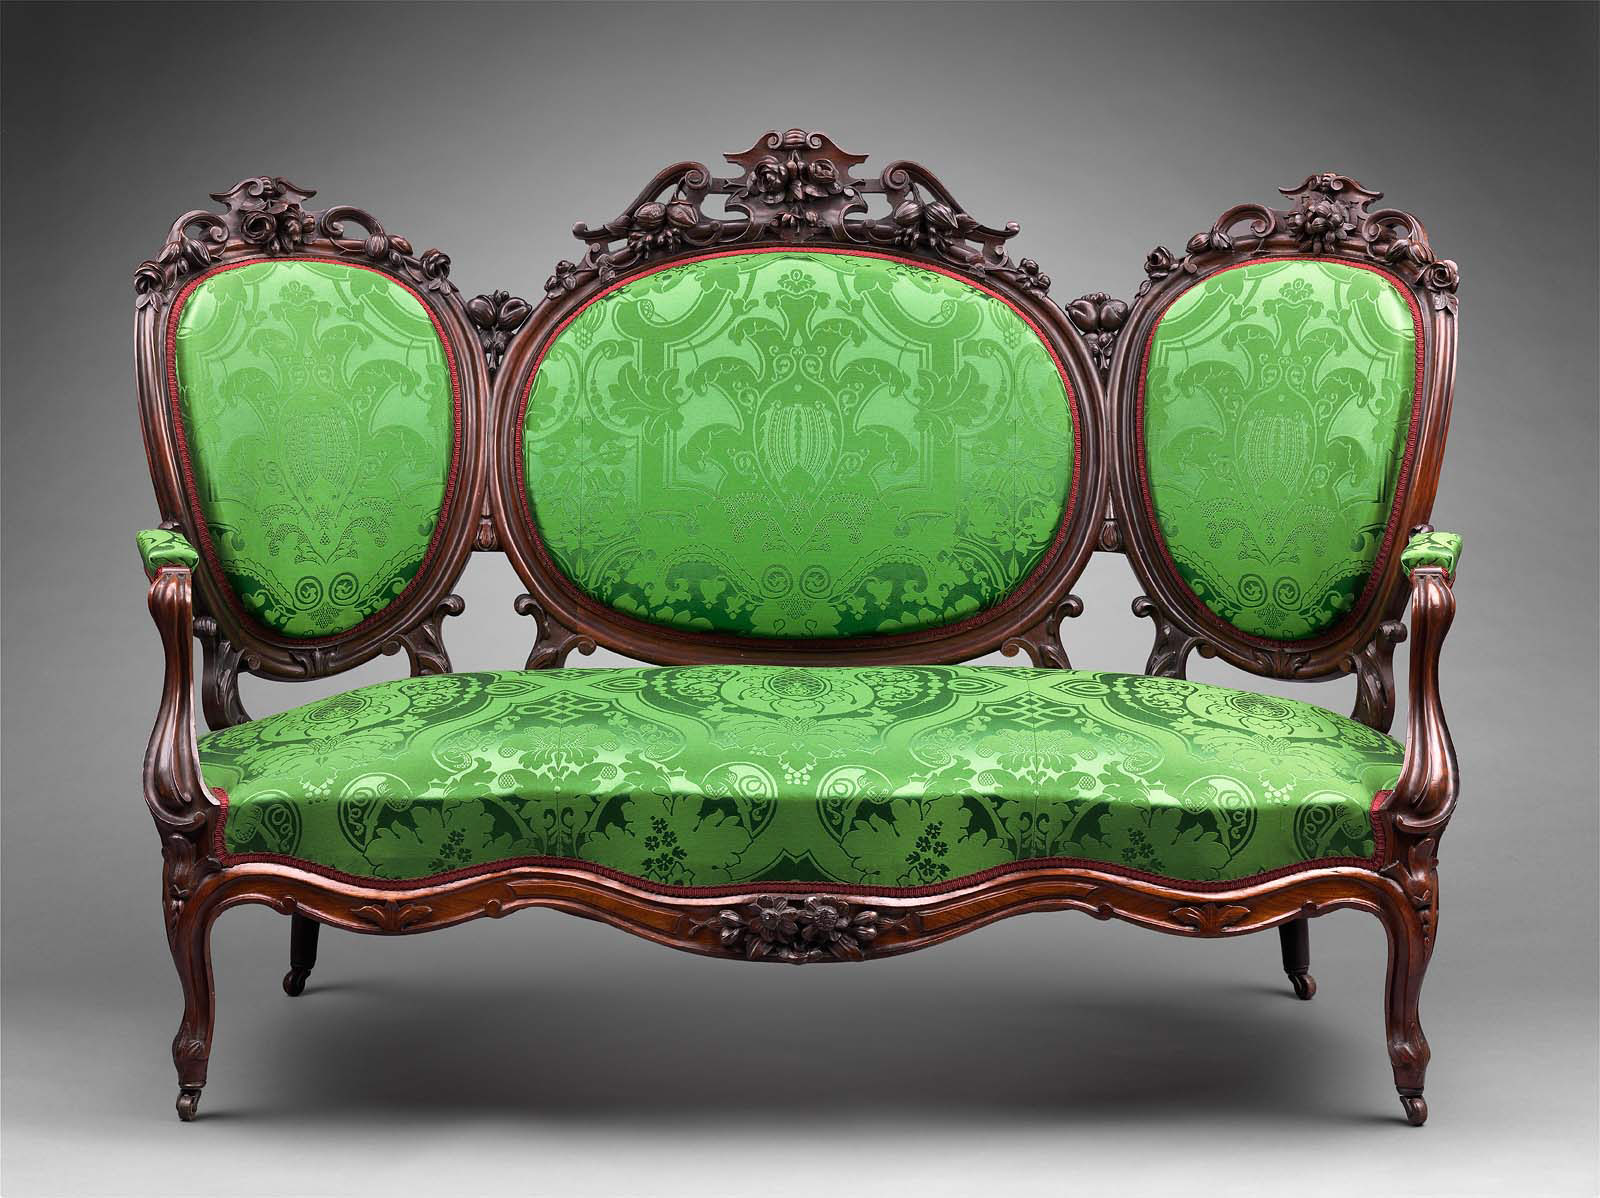 Sofa From A Rococo Revival Parlor Set Museum Of Fine